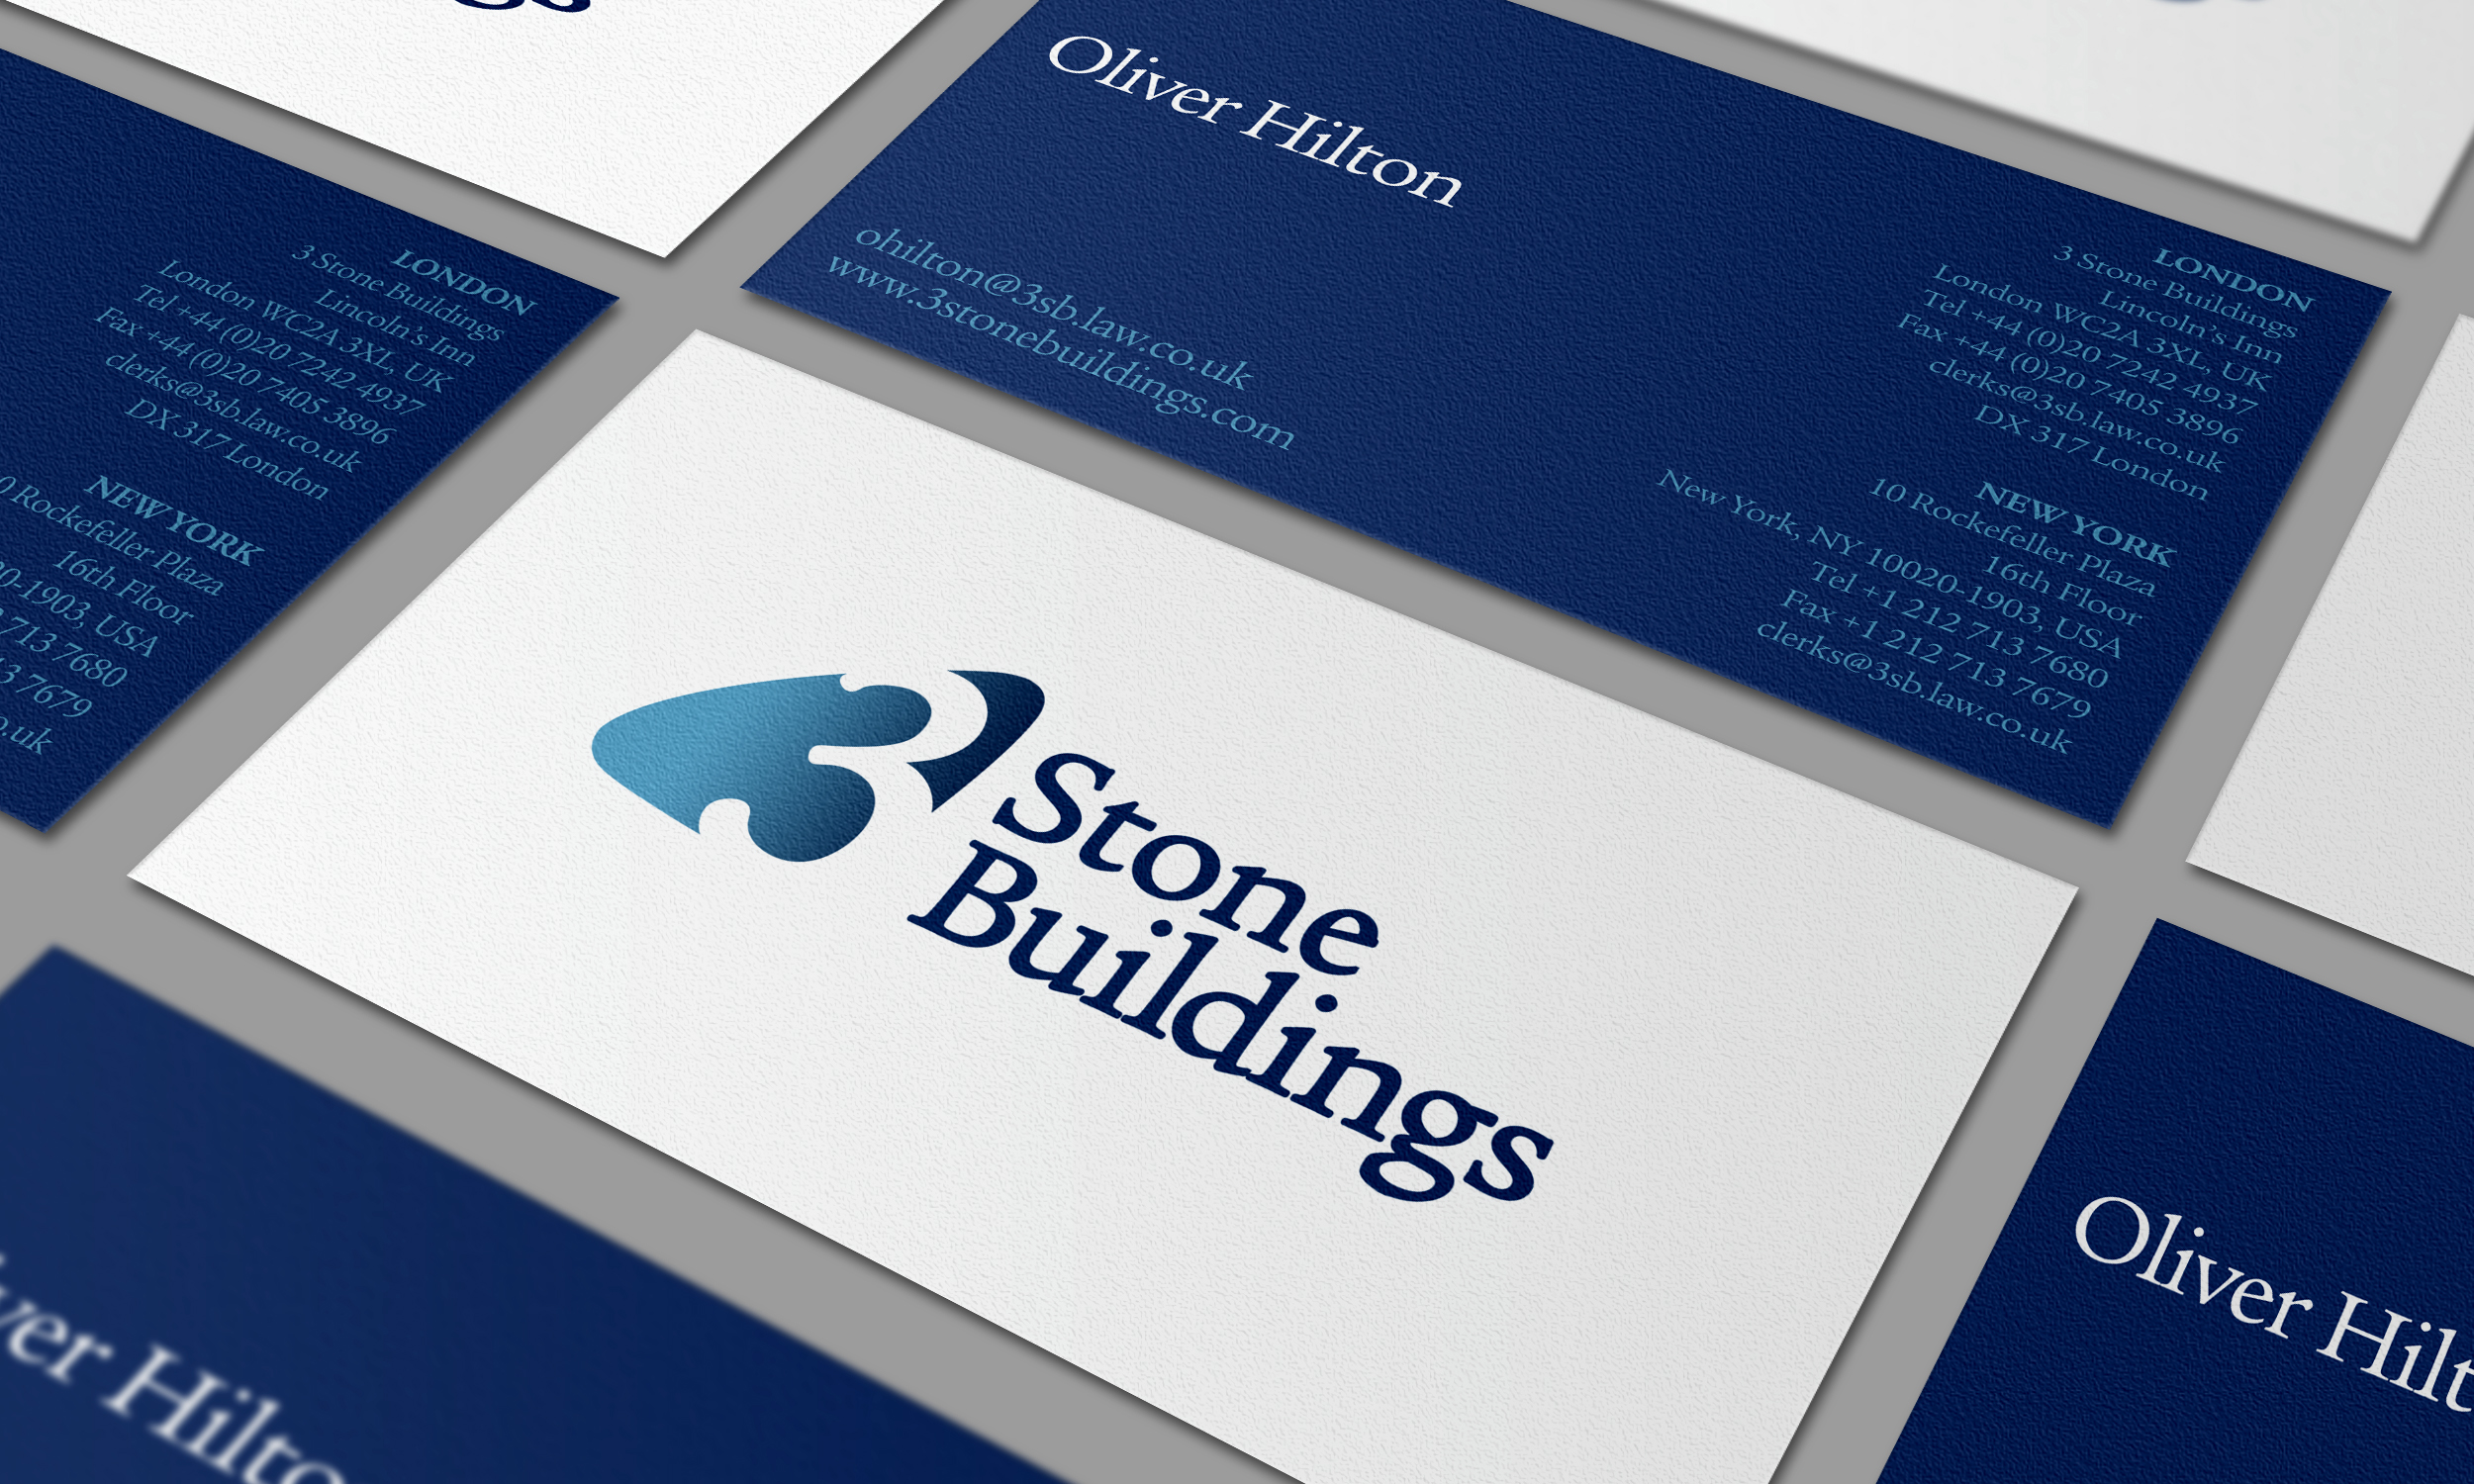 Cristina morientes 3 stone buildings 3 stone buildings reheart Images